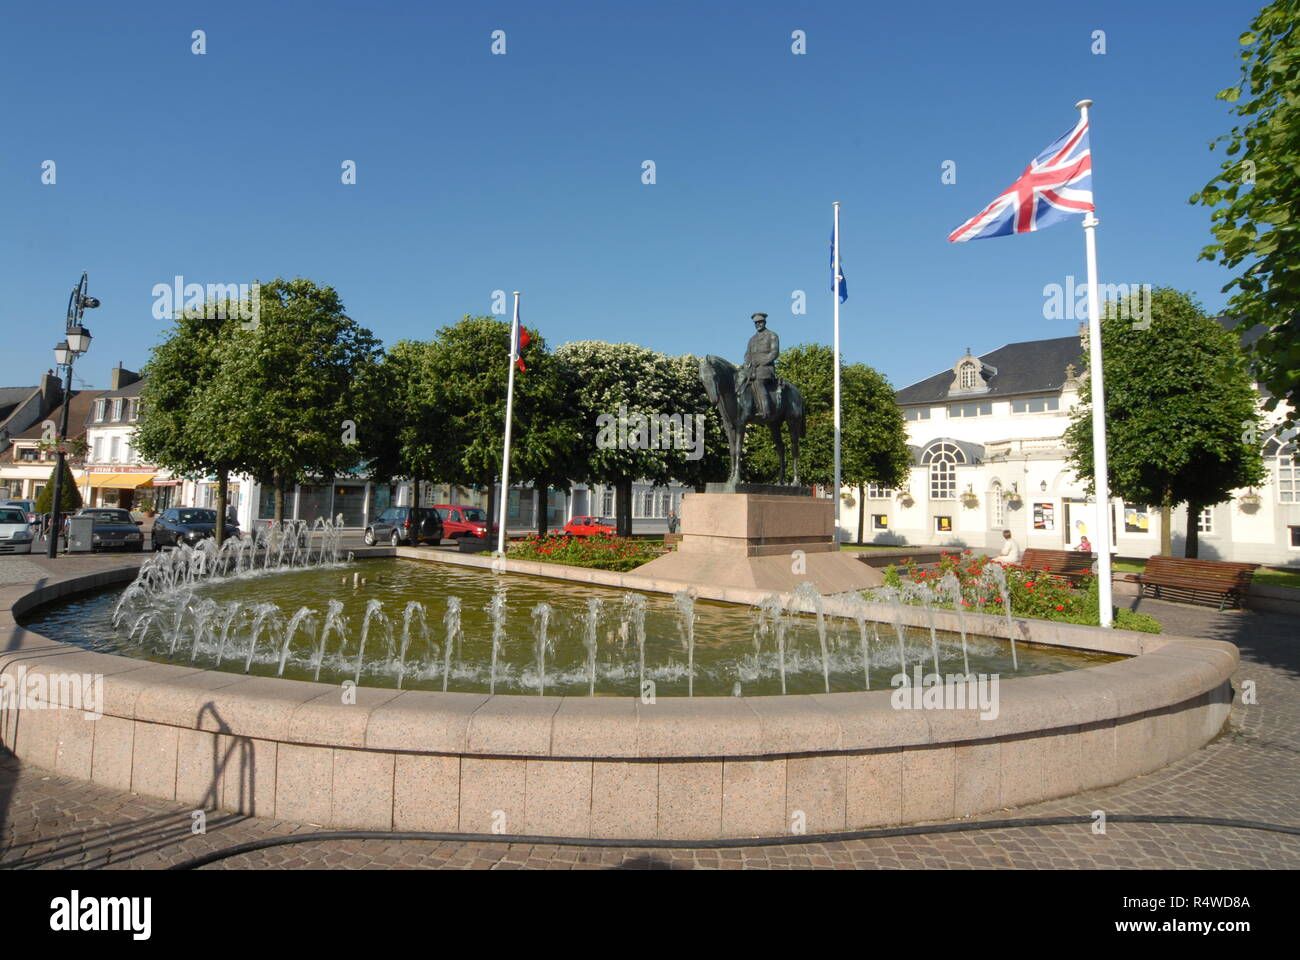 A horse mounted statue of British forces, Field Marshal Douglas Haig in the square of Montreuil sur mar, a few miles inland from Boulogne in Northern  - Stock Image